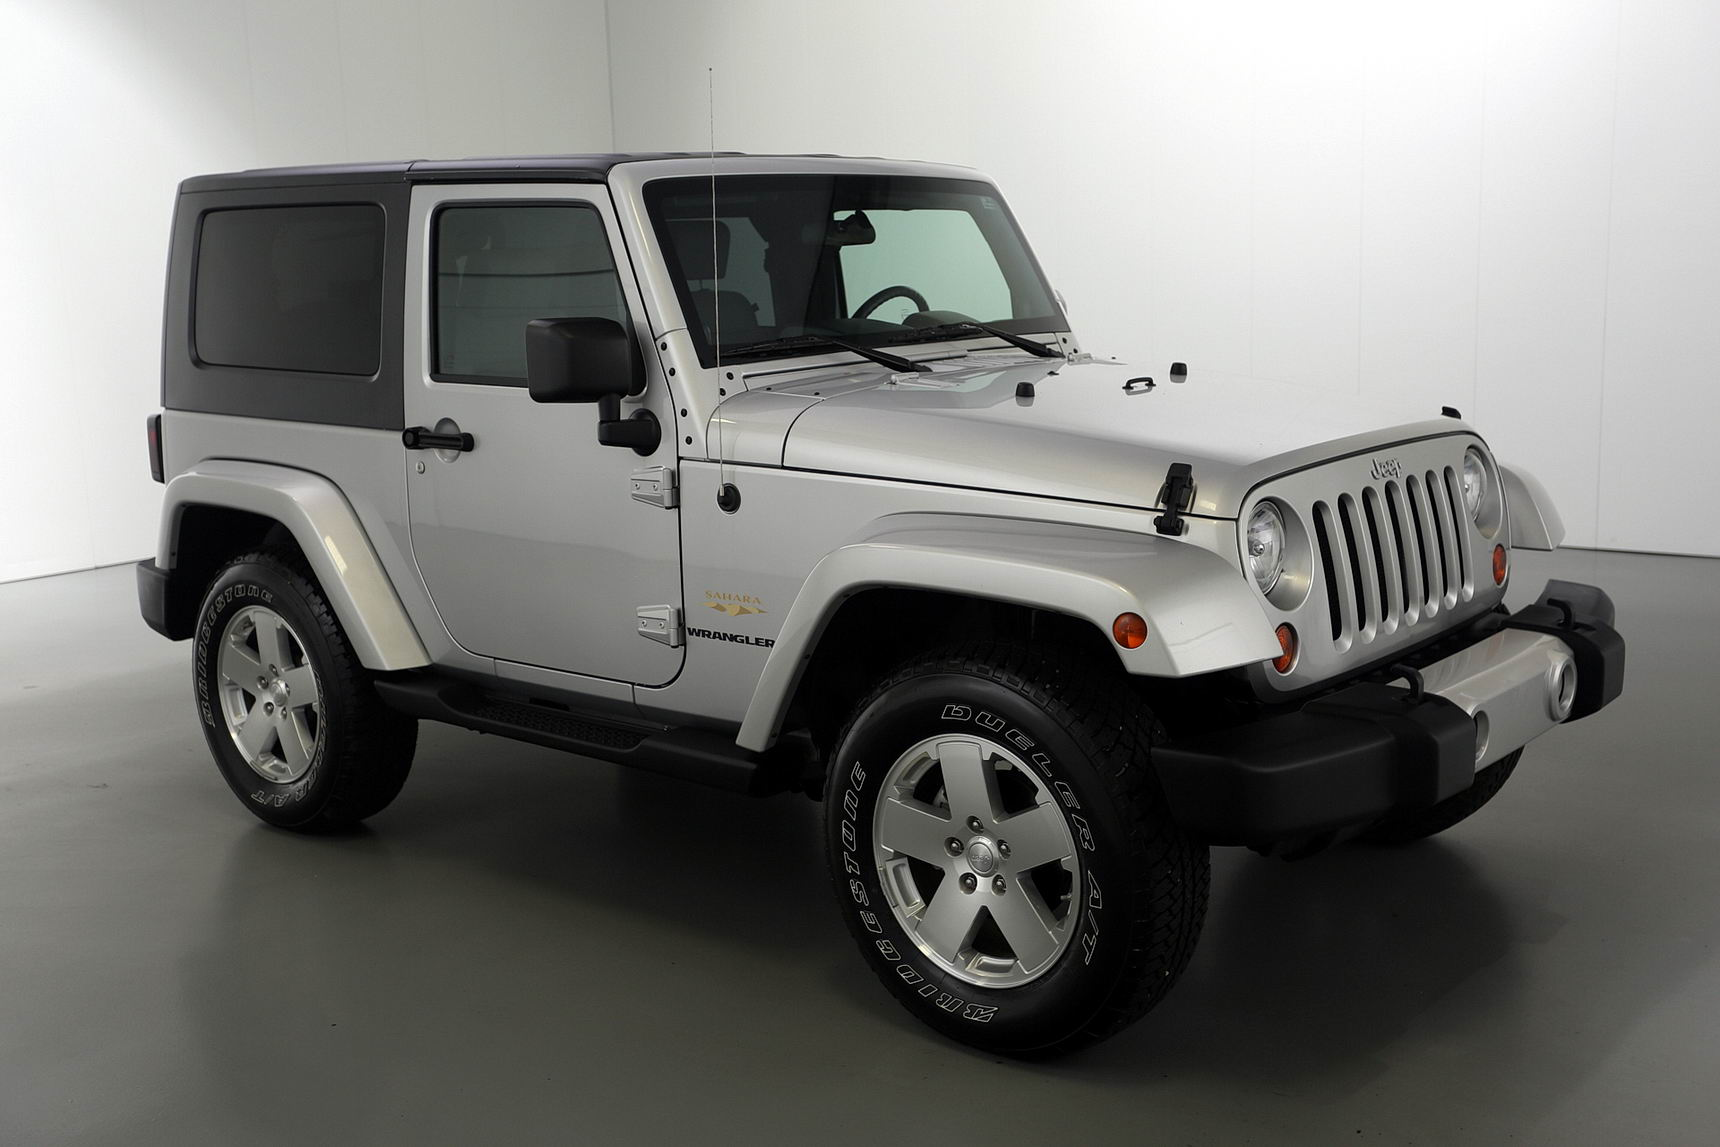 2008 jeep wrangler sahara edition brutal motors. Black Bedroom Furniture Sets. Home Design Ideas